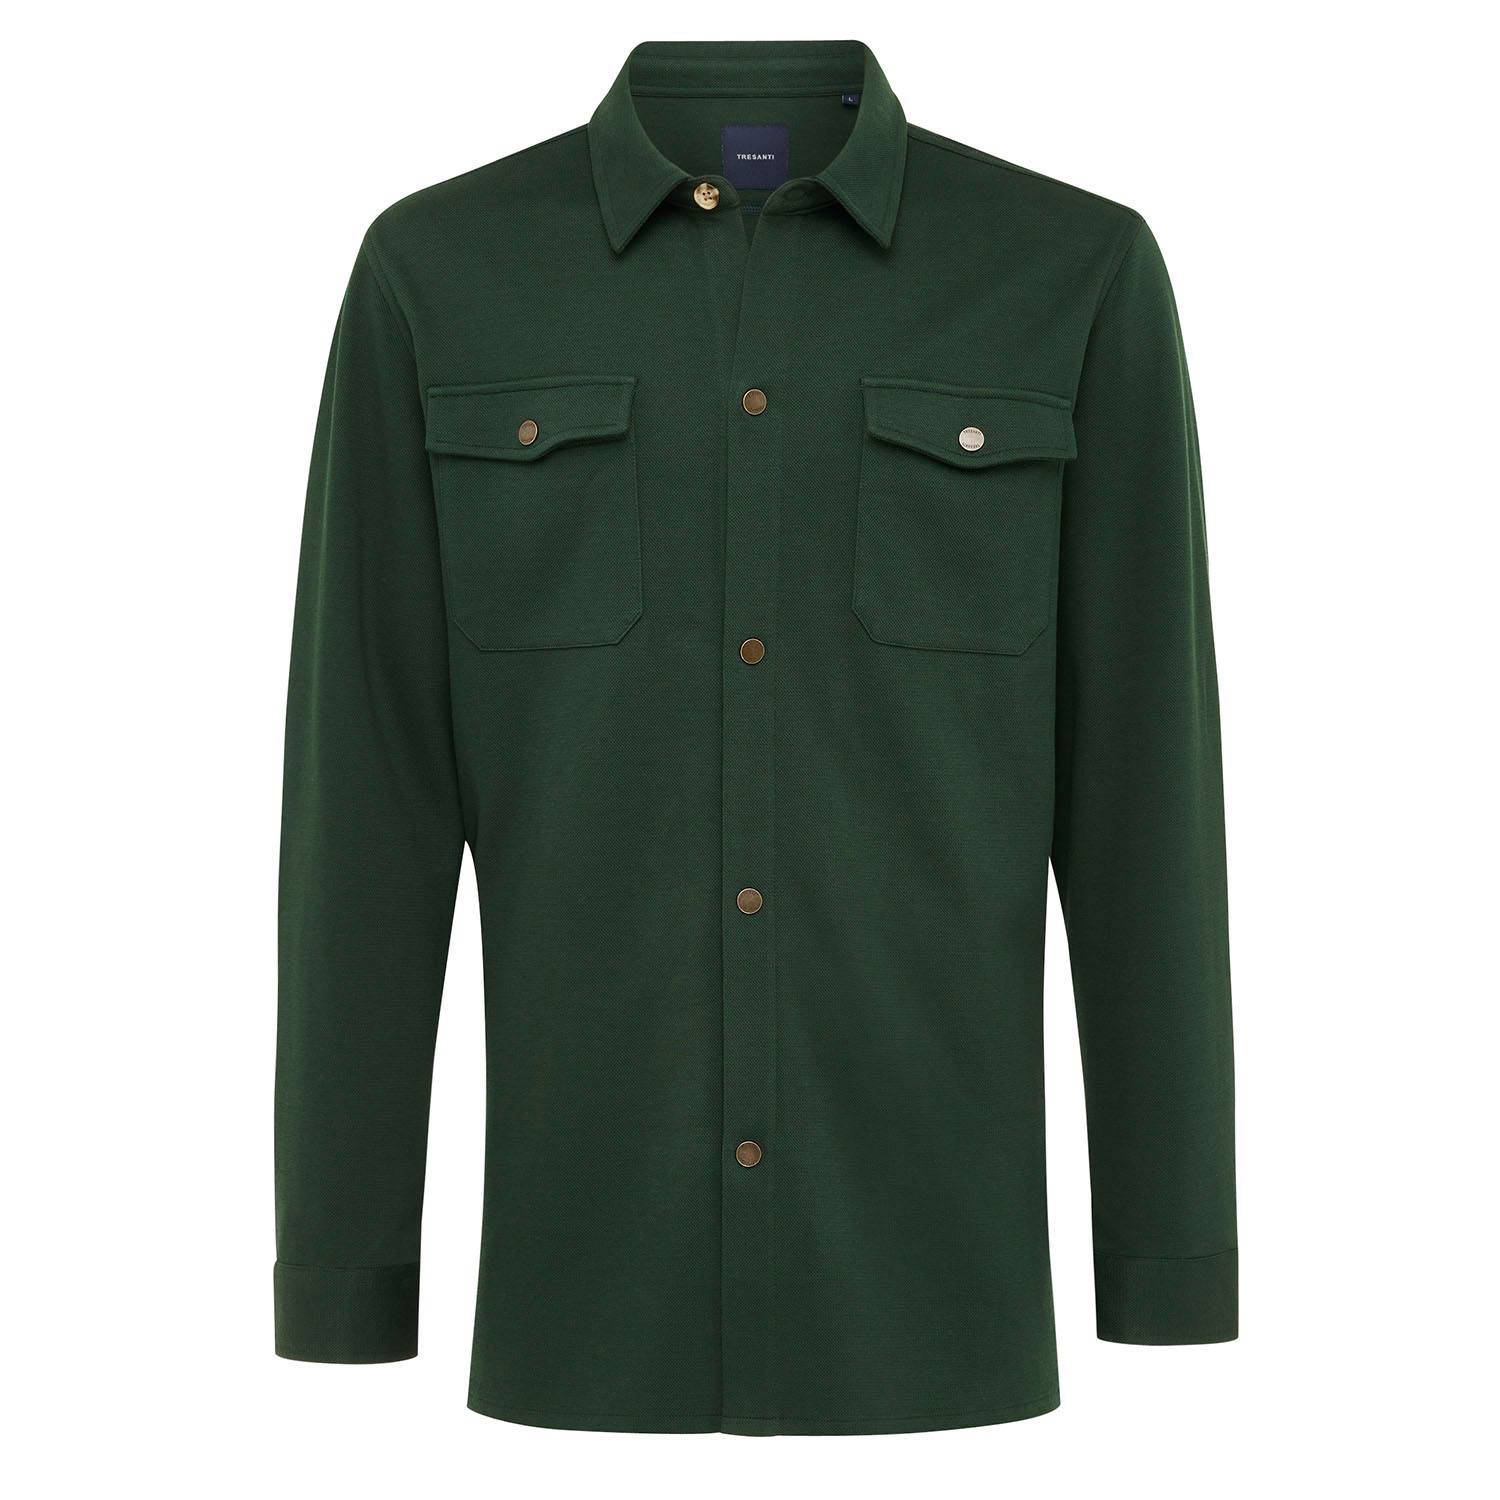 ELEVEN | Jersey overshirt with button closure green